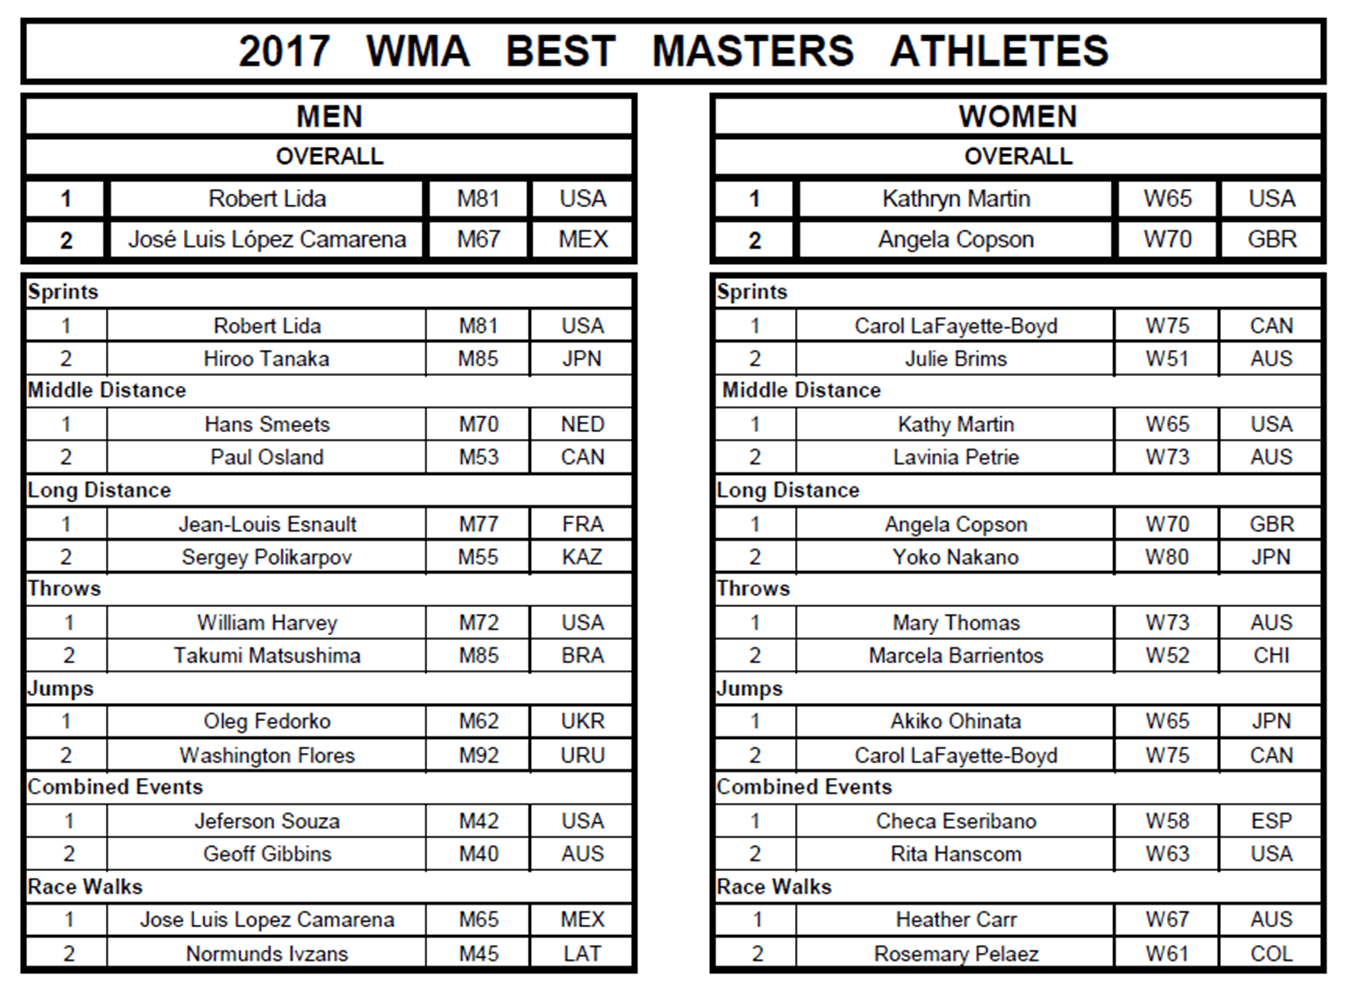 WMA athlete of the year 2017